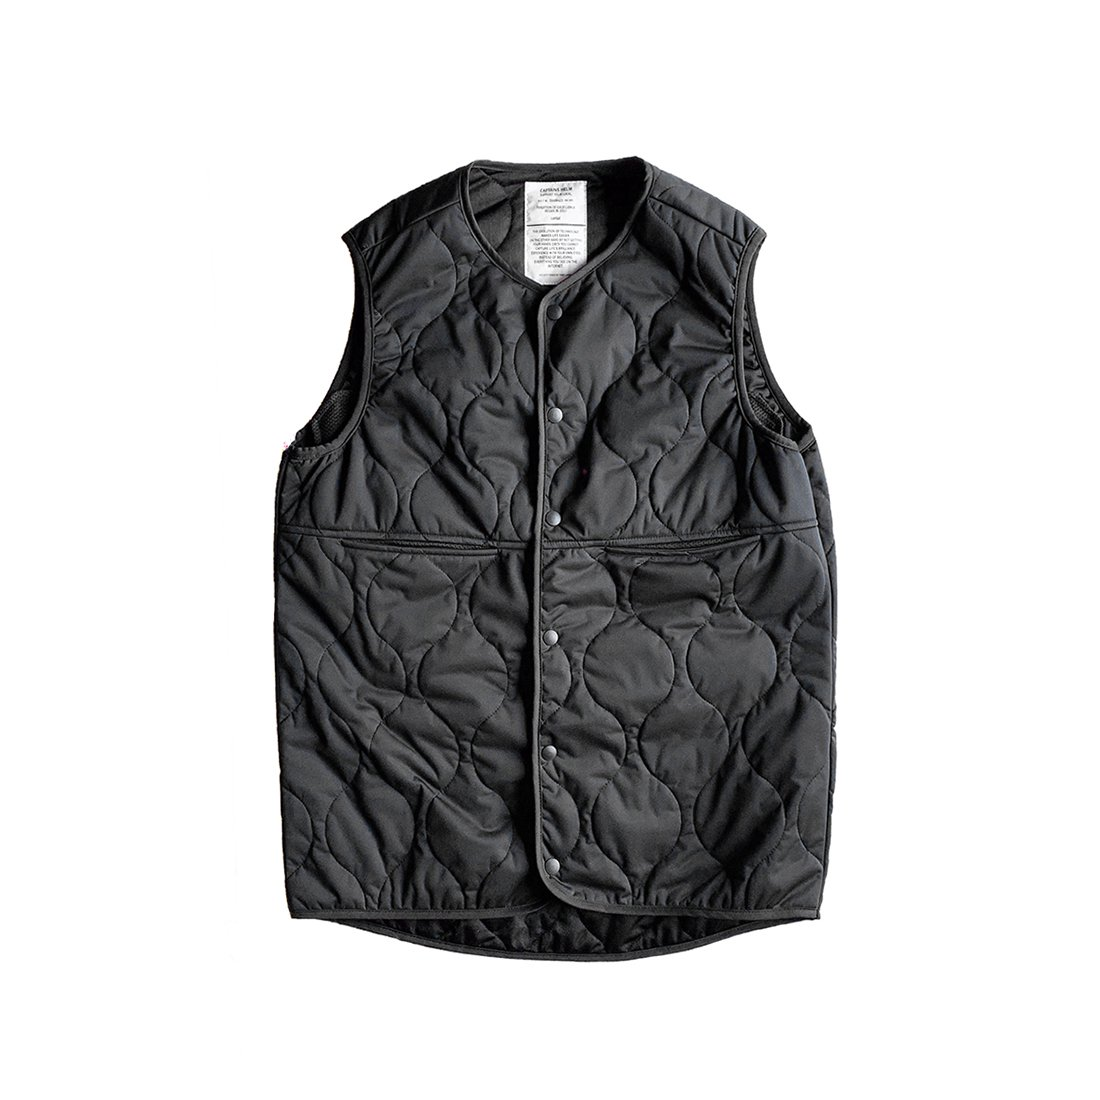 CAPTAINS HELM #Thinsulate LEVEL5 VEST -Black